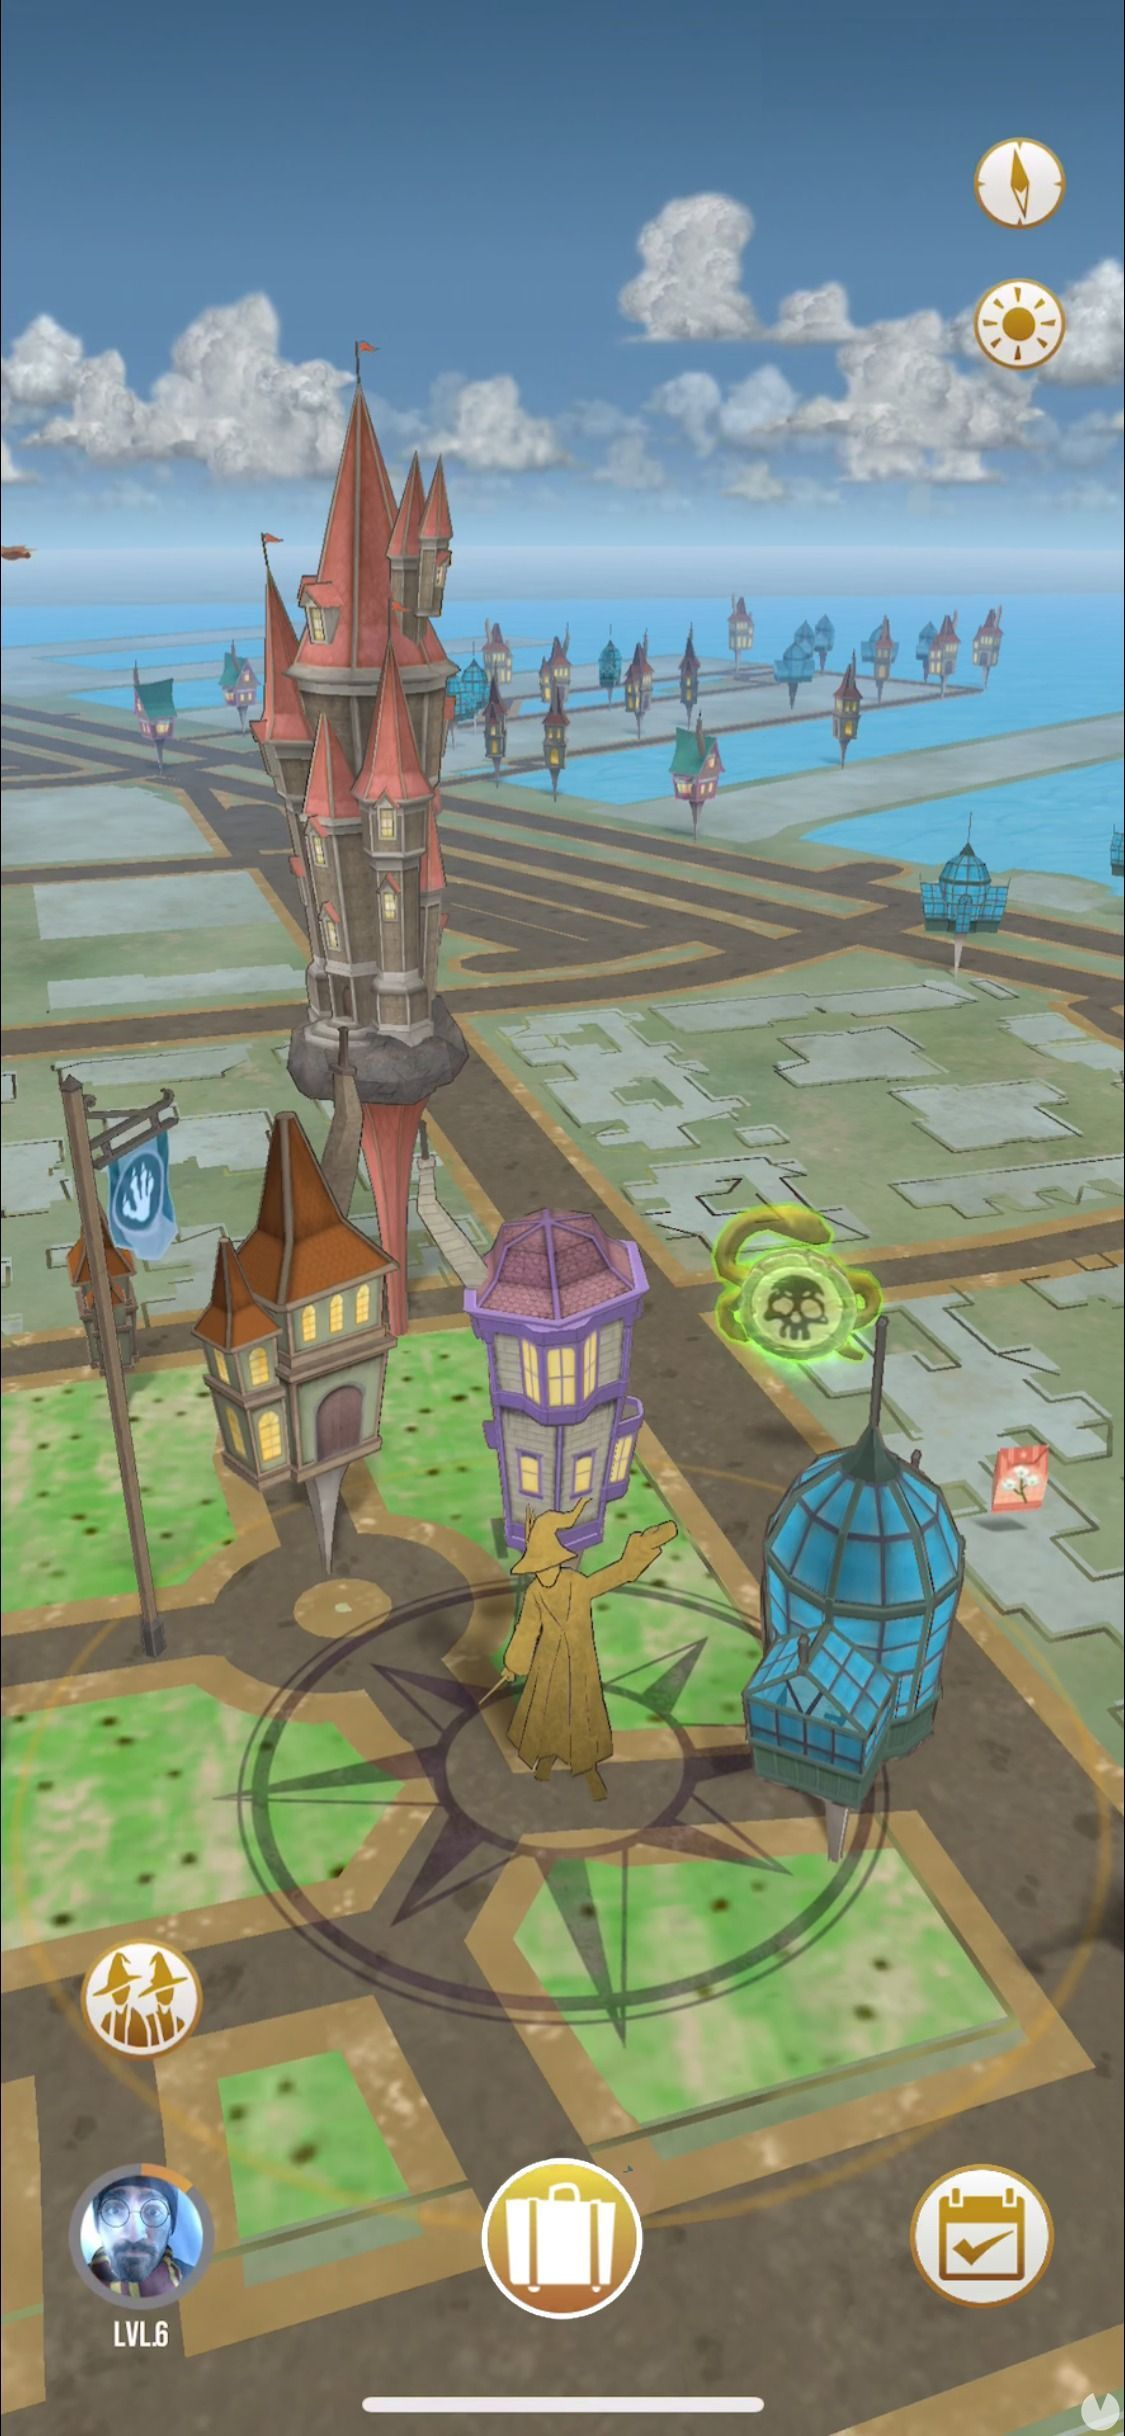 Harry Potter: Wizards Unite for iOS and Android is now available in Spain